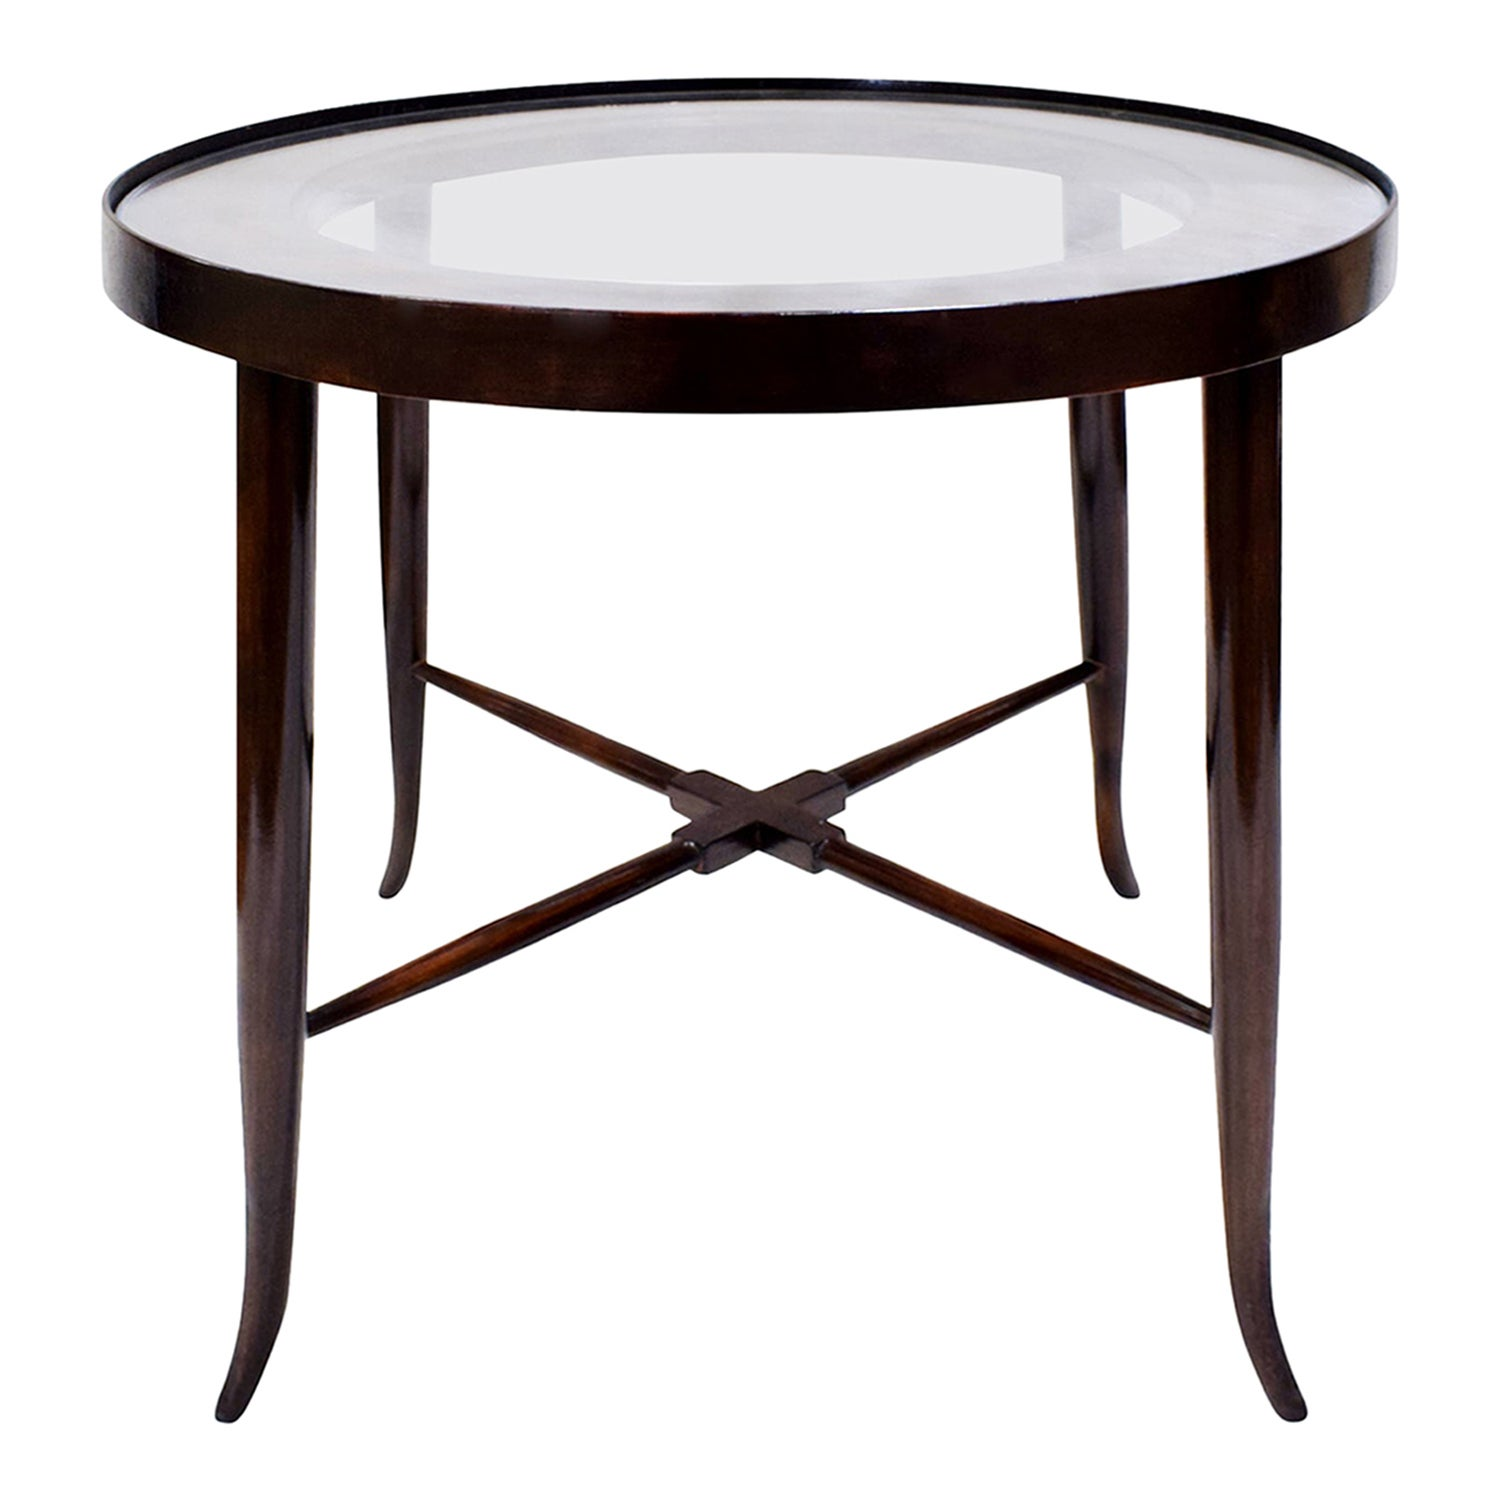 Tommi Parzinger Elegant Side Table With Tapering Legs, 1950s